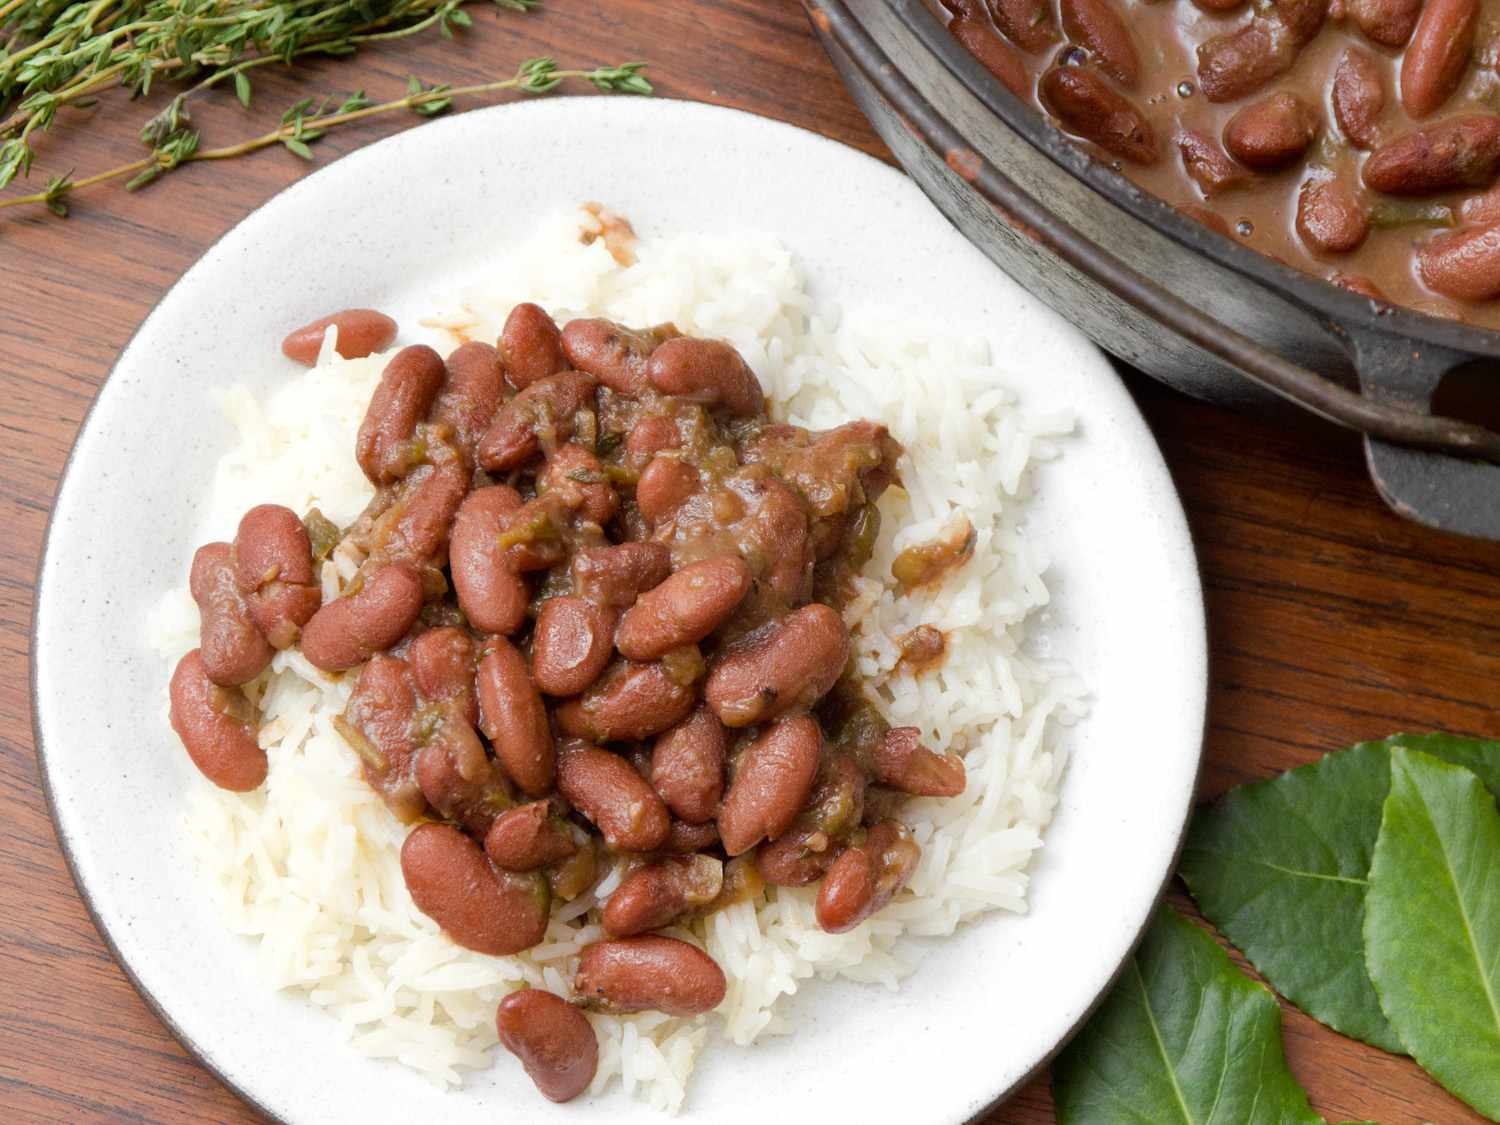 20141117-red-beans-rice-max-falkowitz.jpg